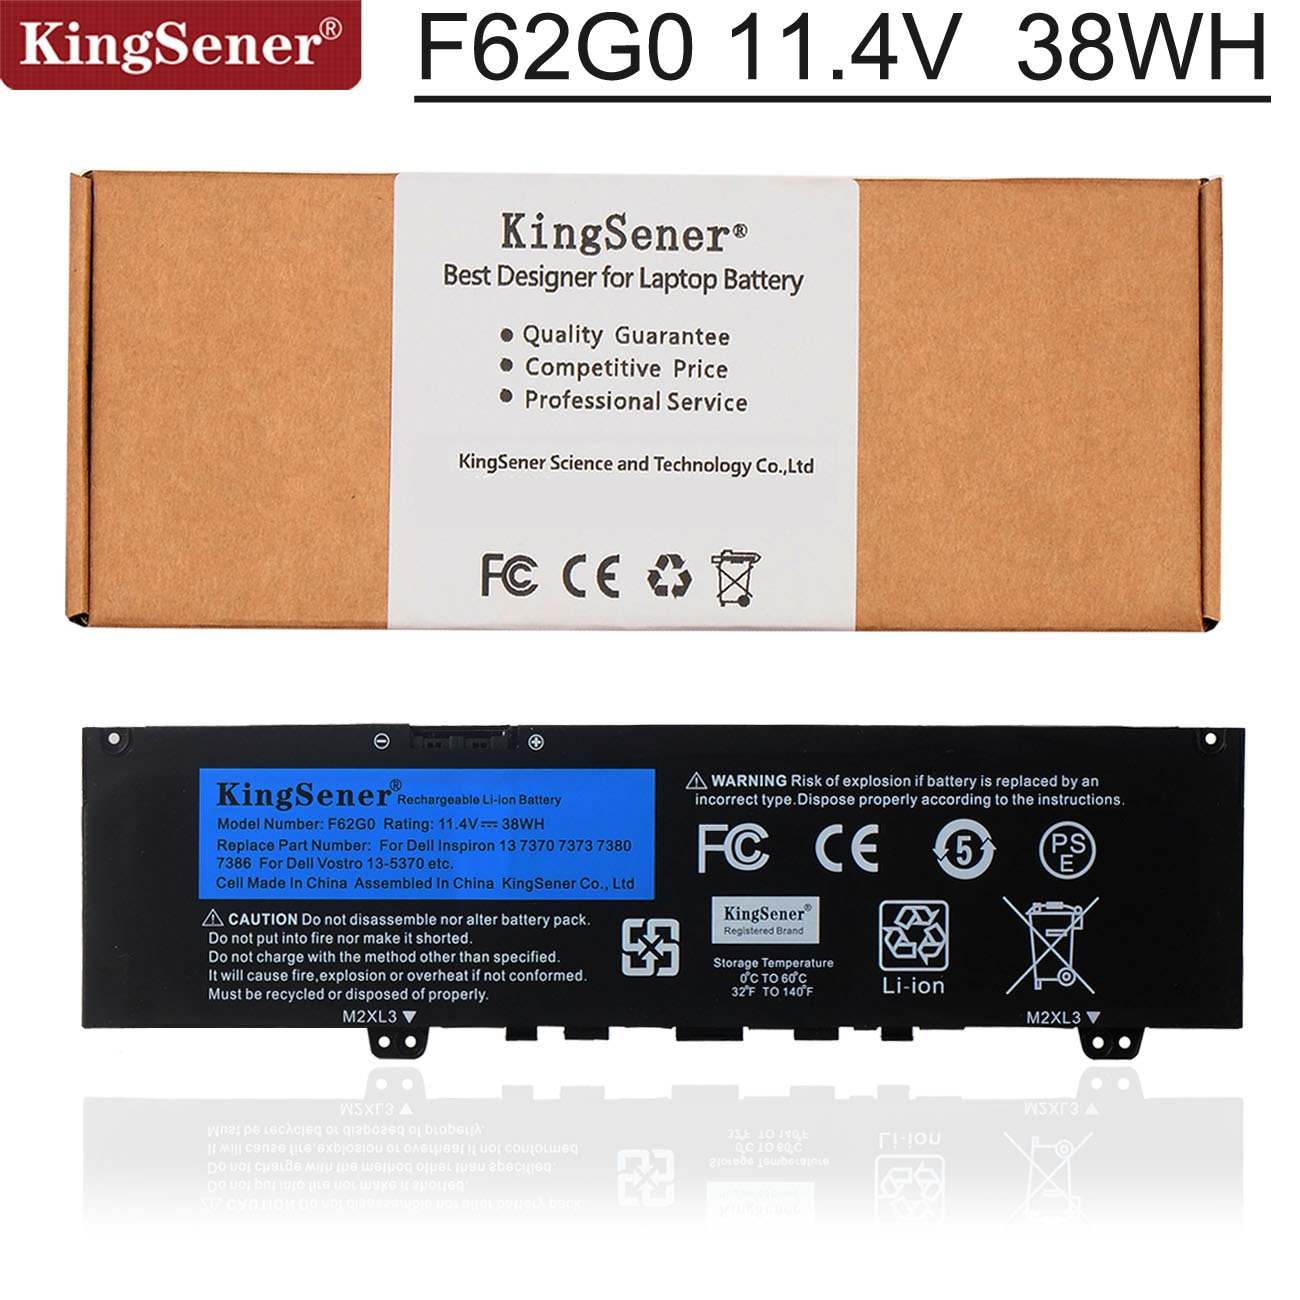 AliExpress - Kingsener F62G0 Laptop Battery For DELL Inspiron 13 7370 7373 7380 7386 Vostro 5370 P83G P87G P91GRPJC3 39DY5 11.4V 38WH